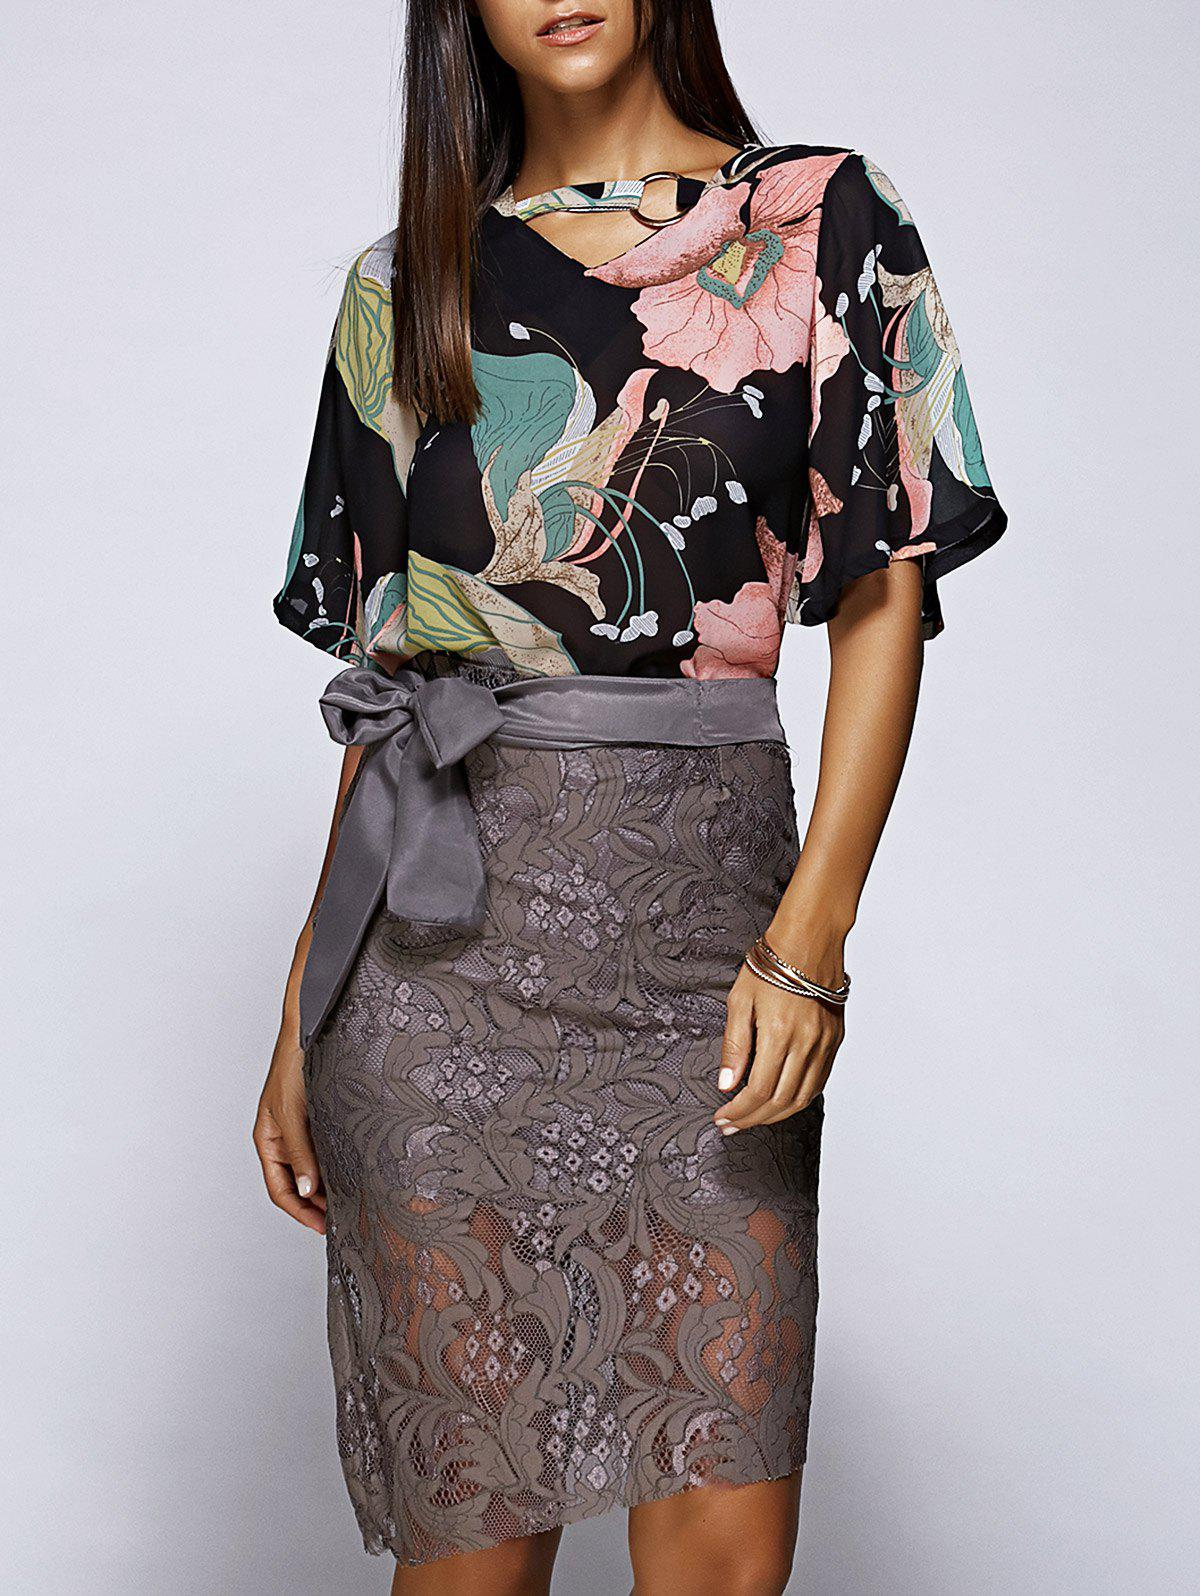 Stunning Floral Hollow Out Top and Lace Skirt Set For Women - COLORMIX M